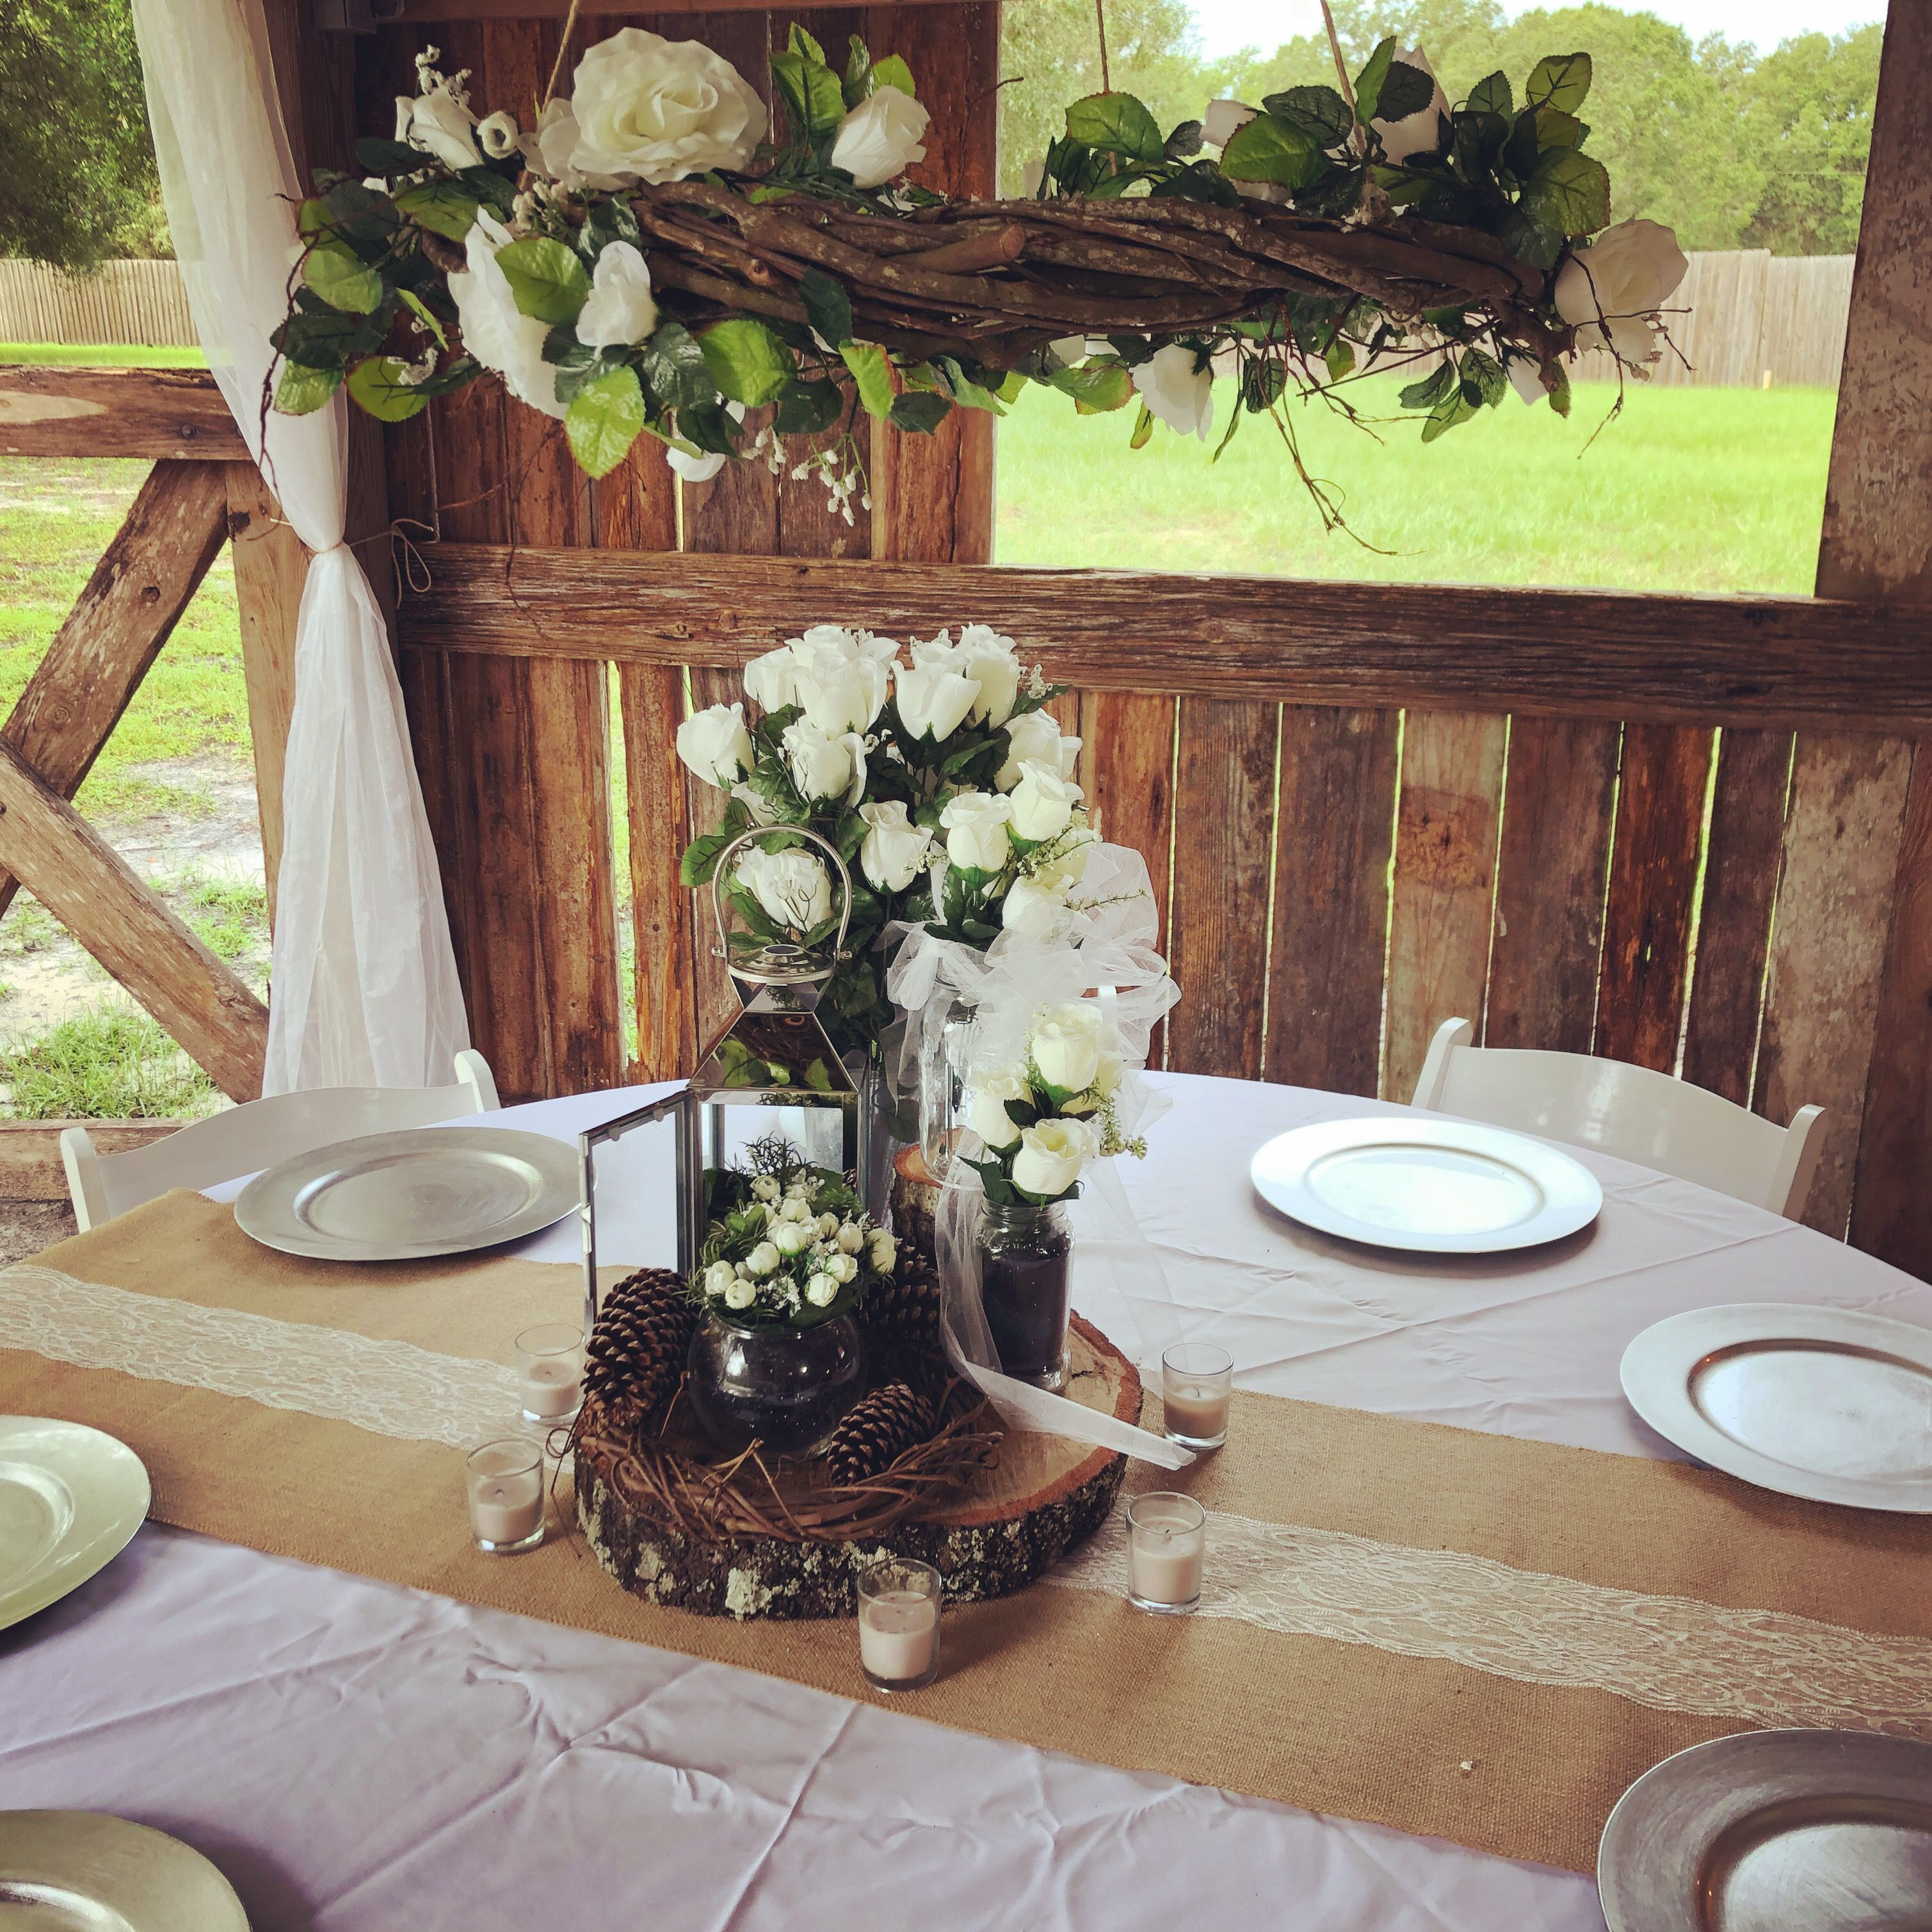 Rustic Wedding Decorations For Indoor And Outdoor Settings: Love The Centerpieces And The Grape Vine And Rose Wreath